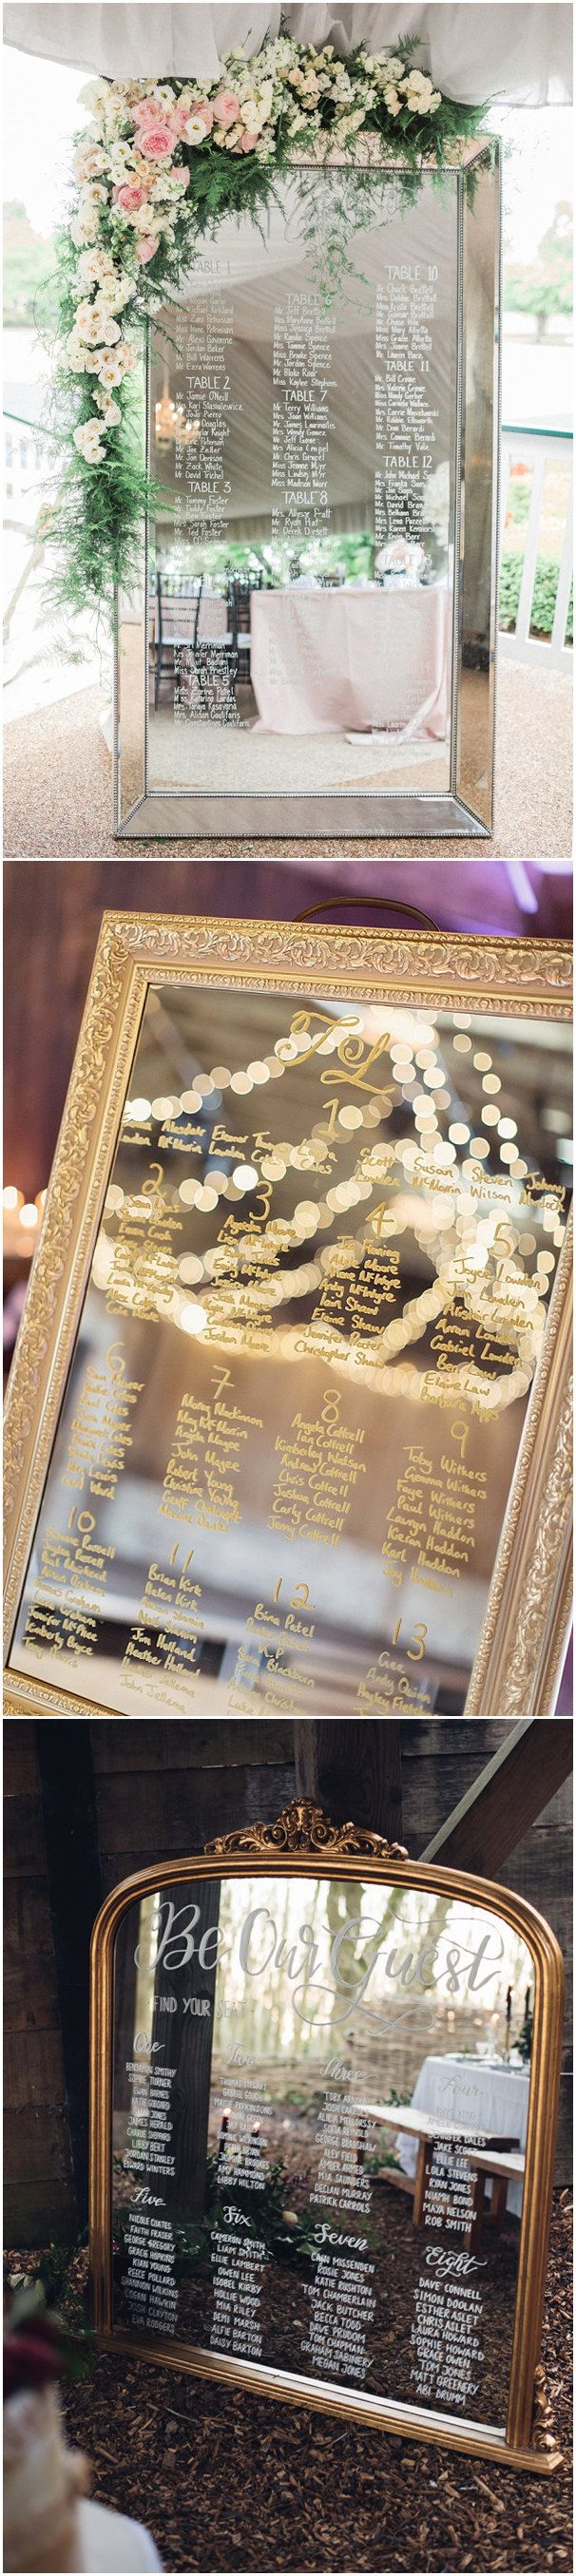 super elegant and vintage mirror wedding seating chart ideas